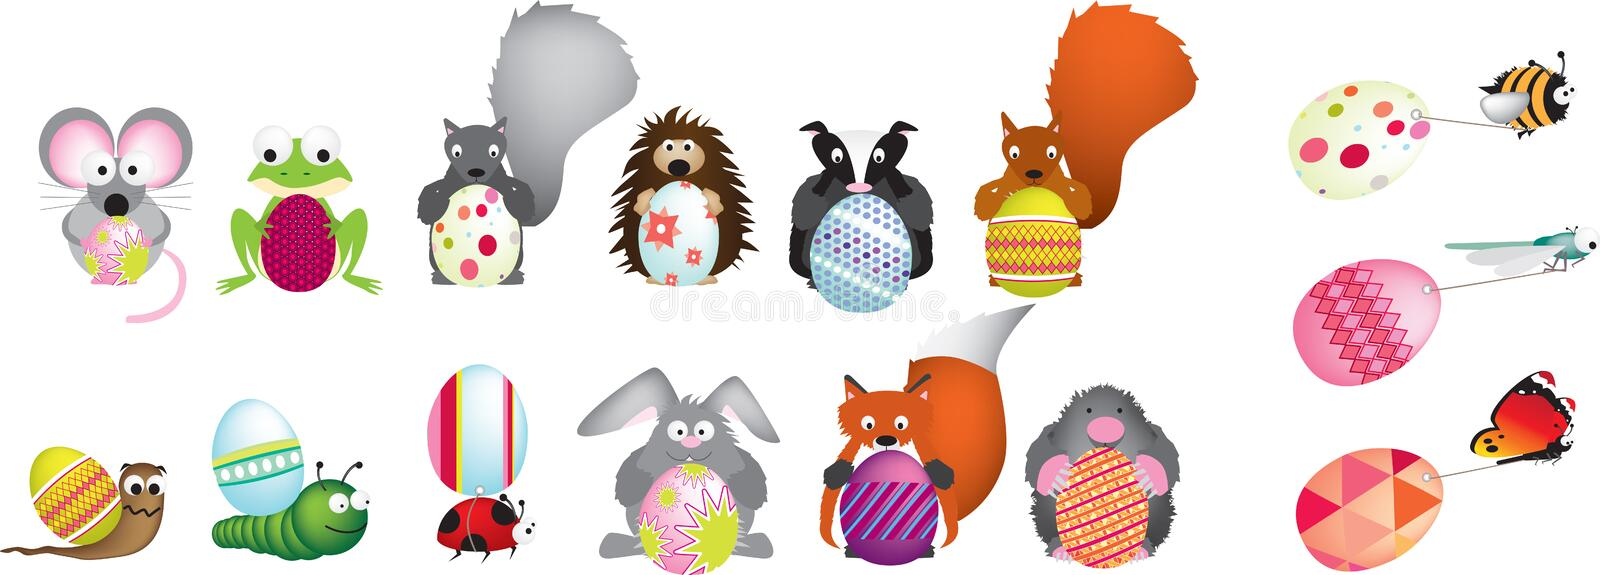 Download British Wildlife Holding Easter Eggs Stock Vector - Image: 8275222